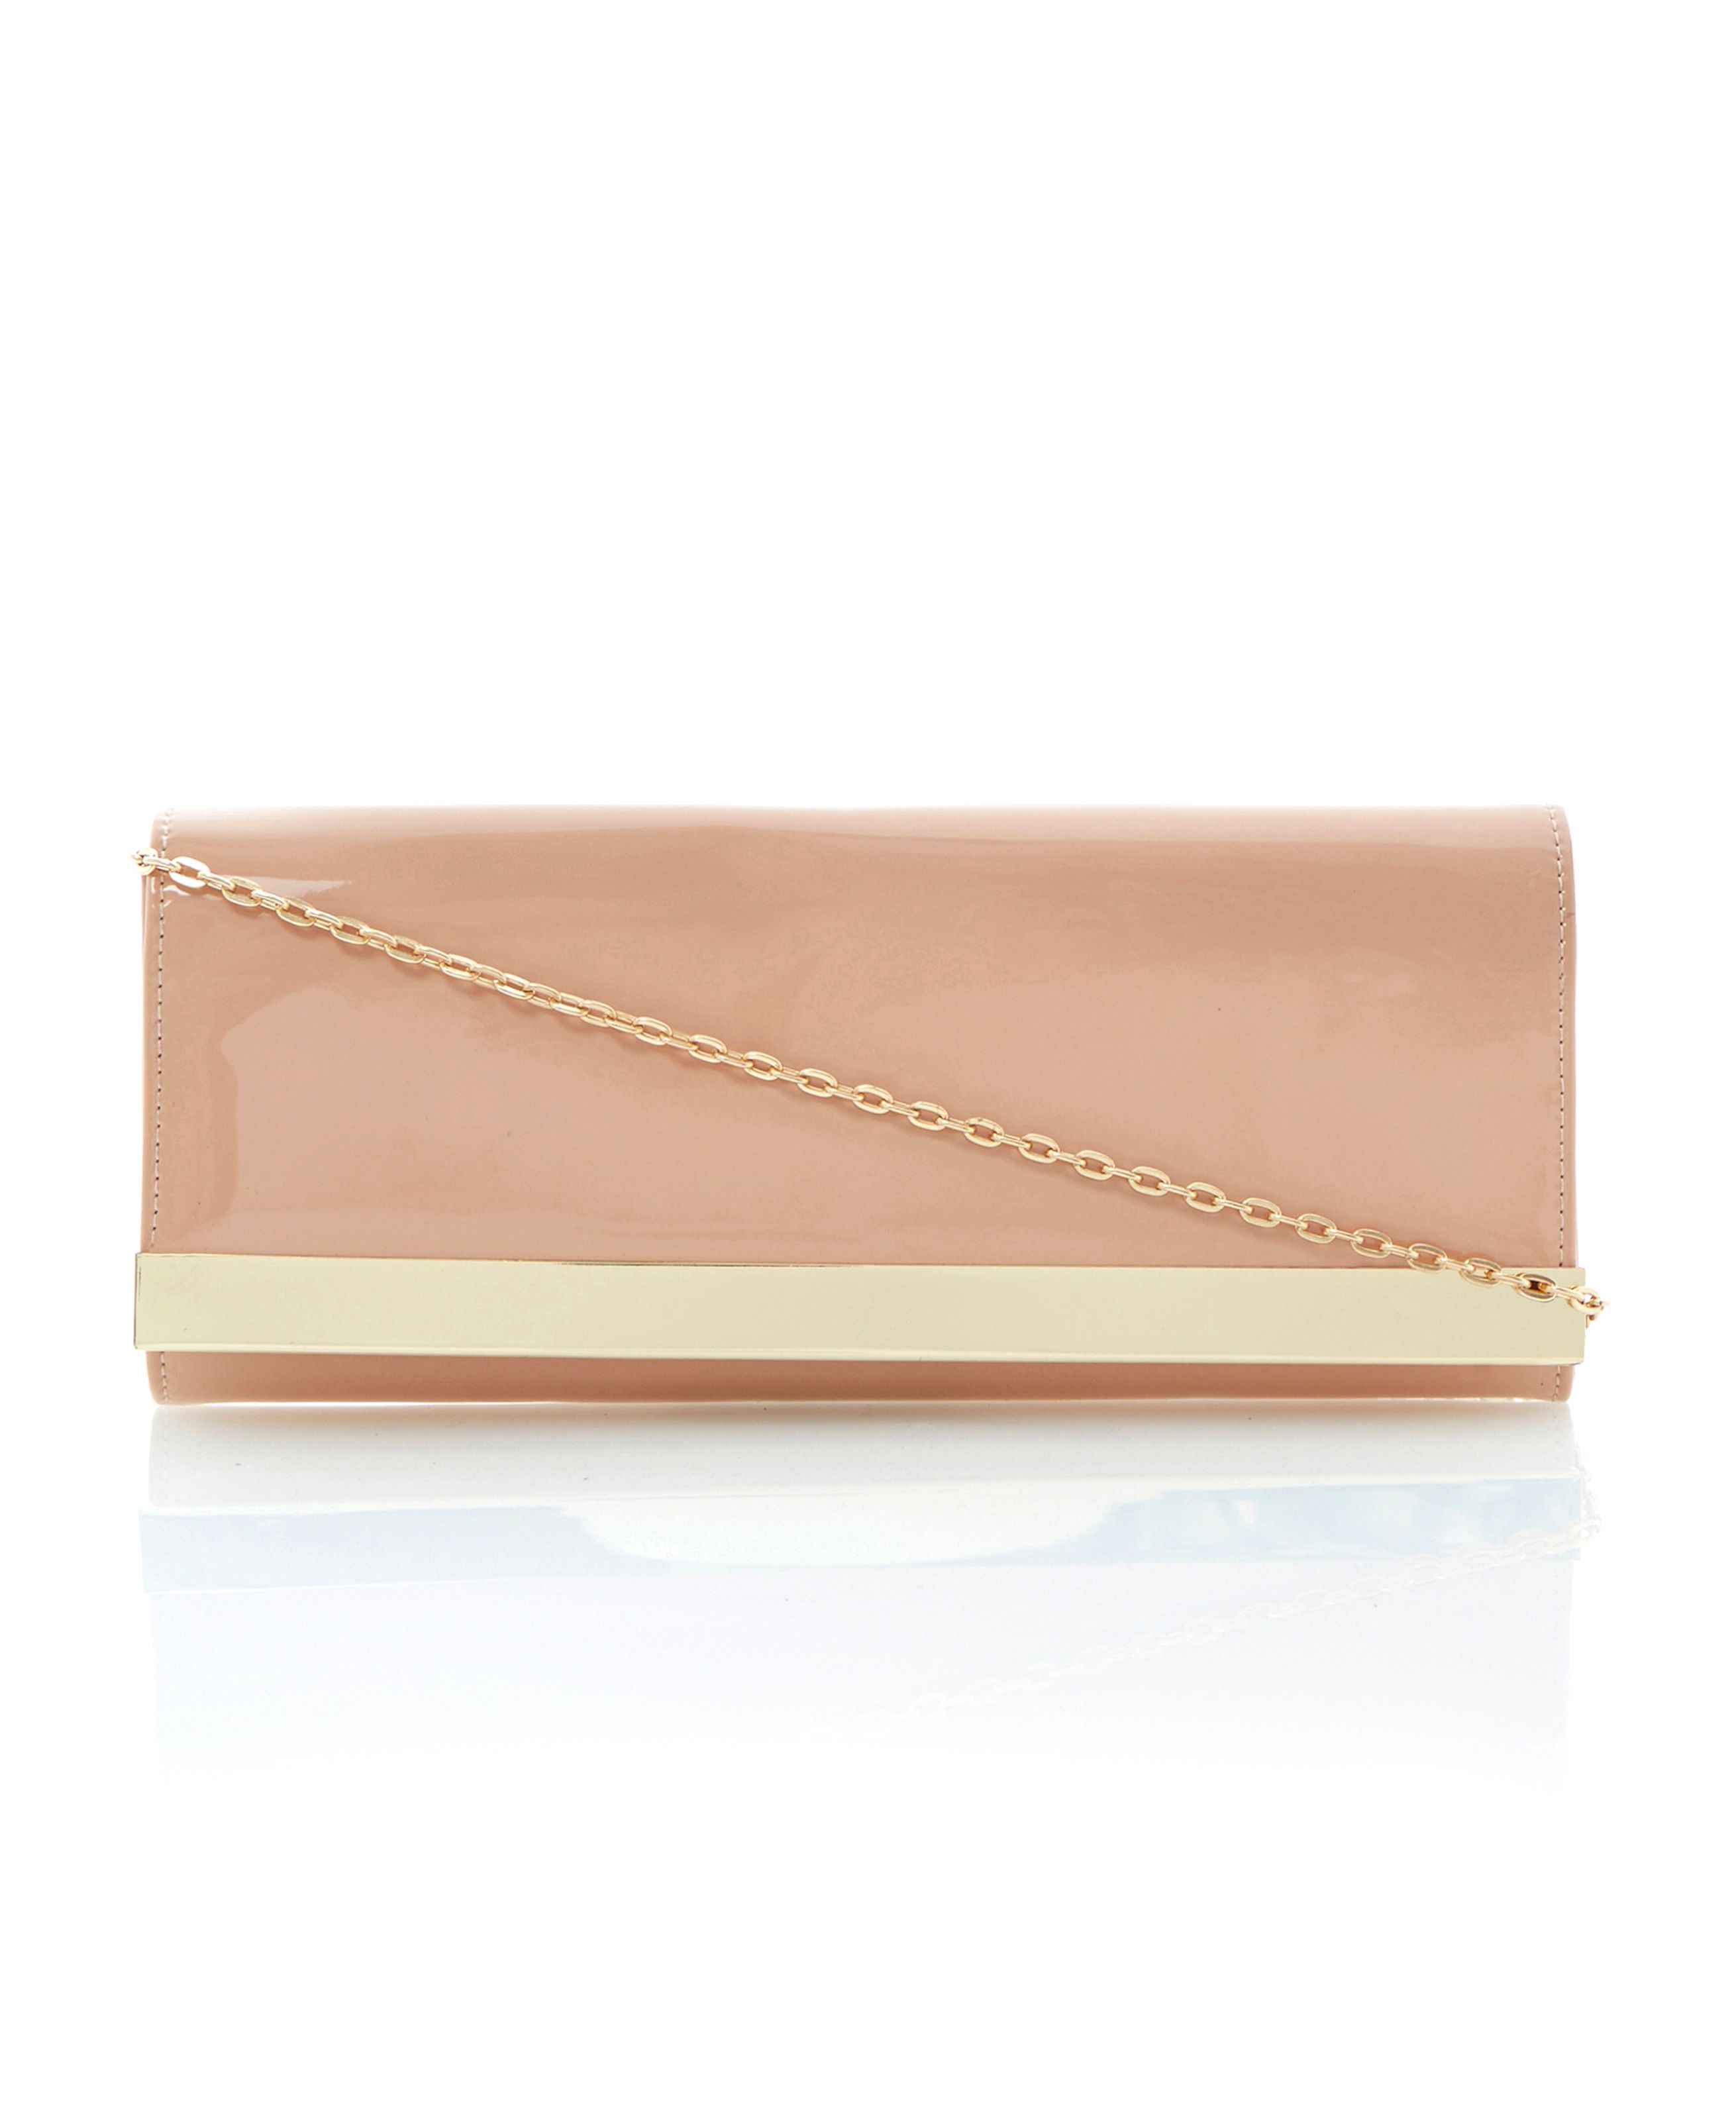 Boka metal plate clutch bag